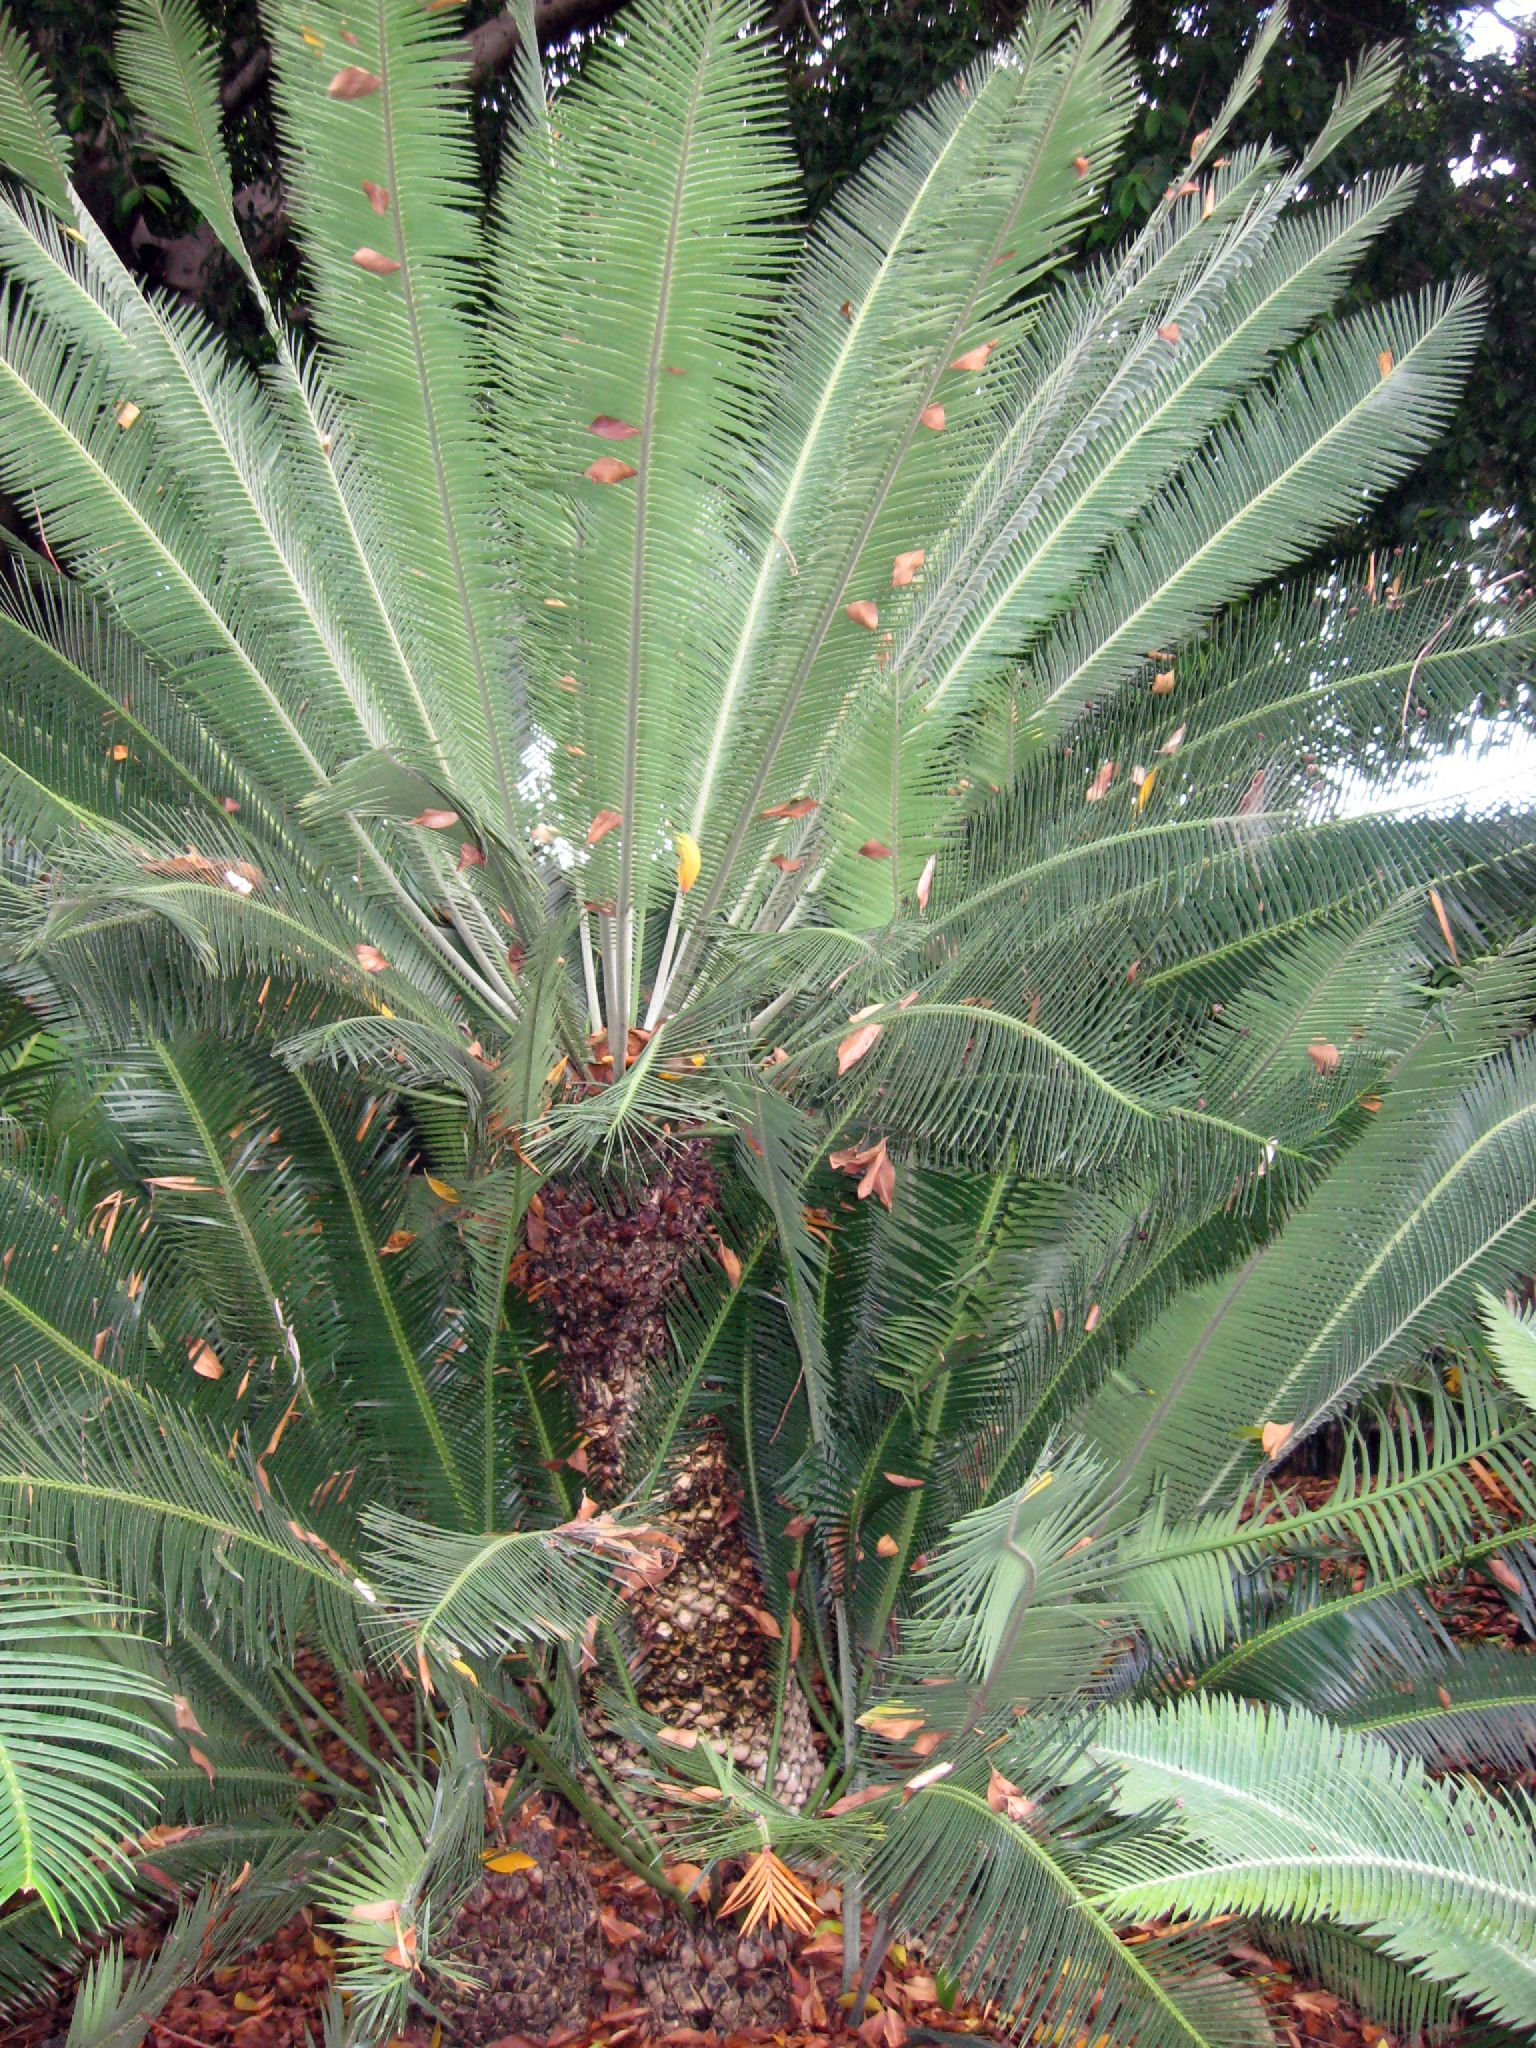 Image of Cycad